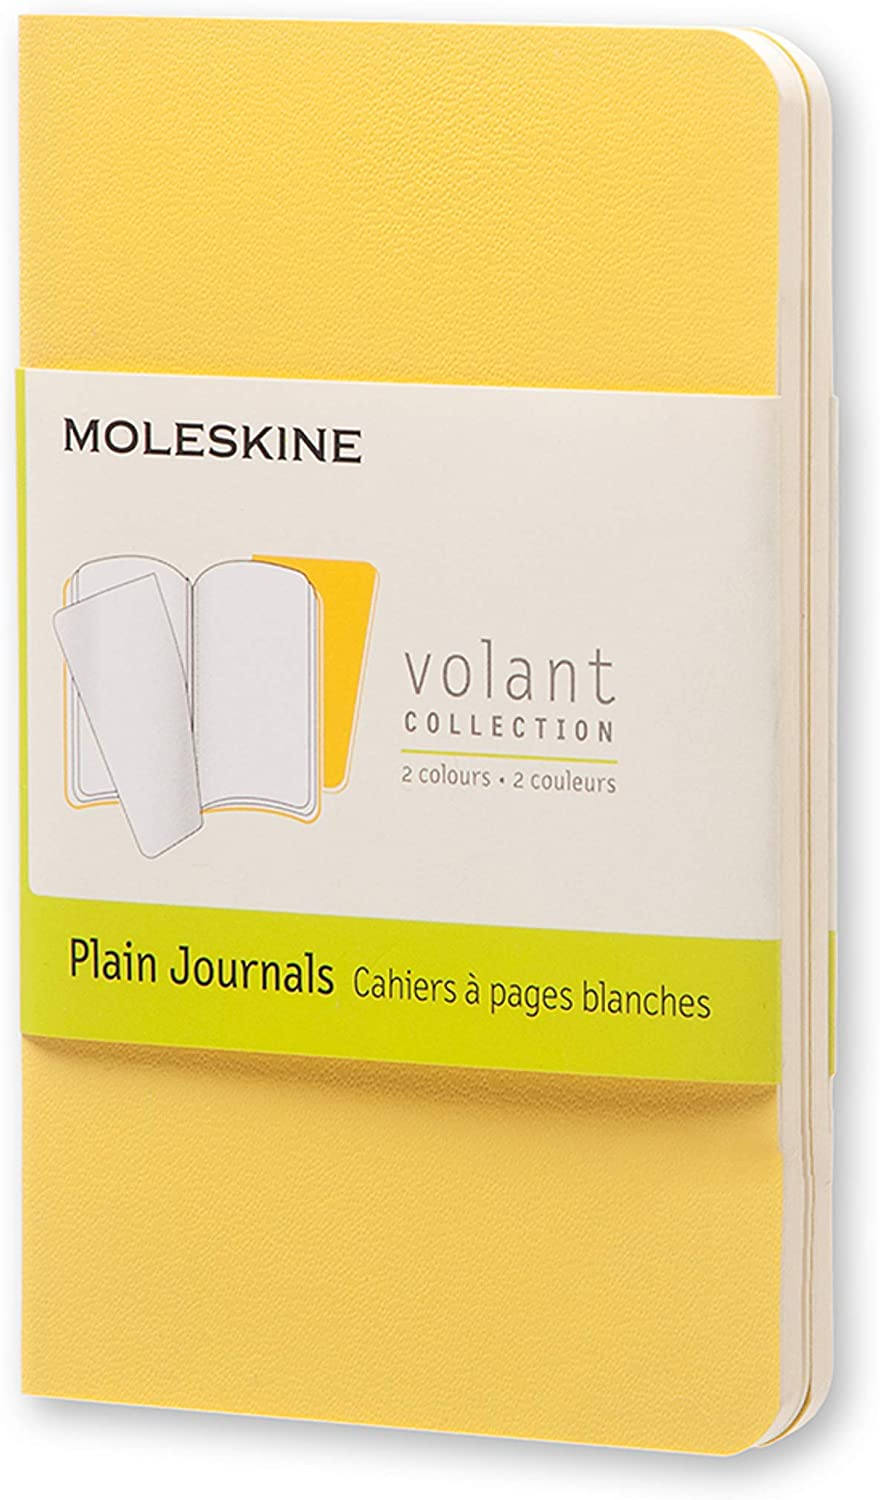 Moleskine Quaderno Cahier Journal Volant Collection, Xs, Pagina Bianca, Giallo